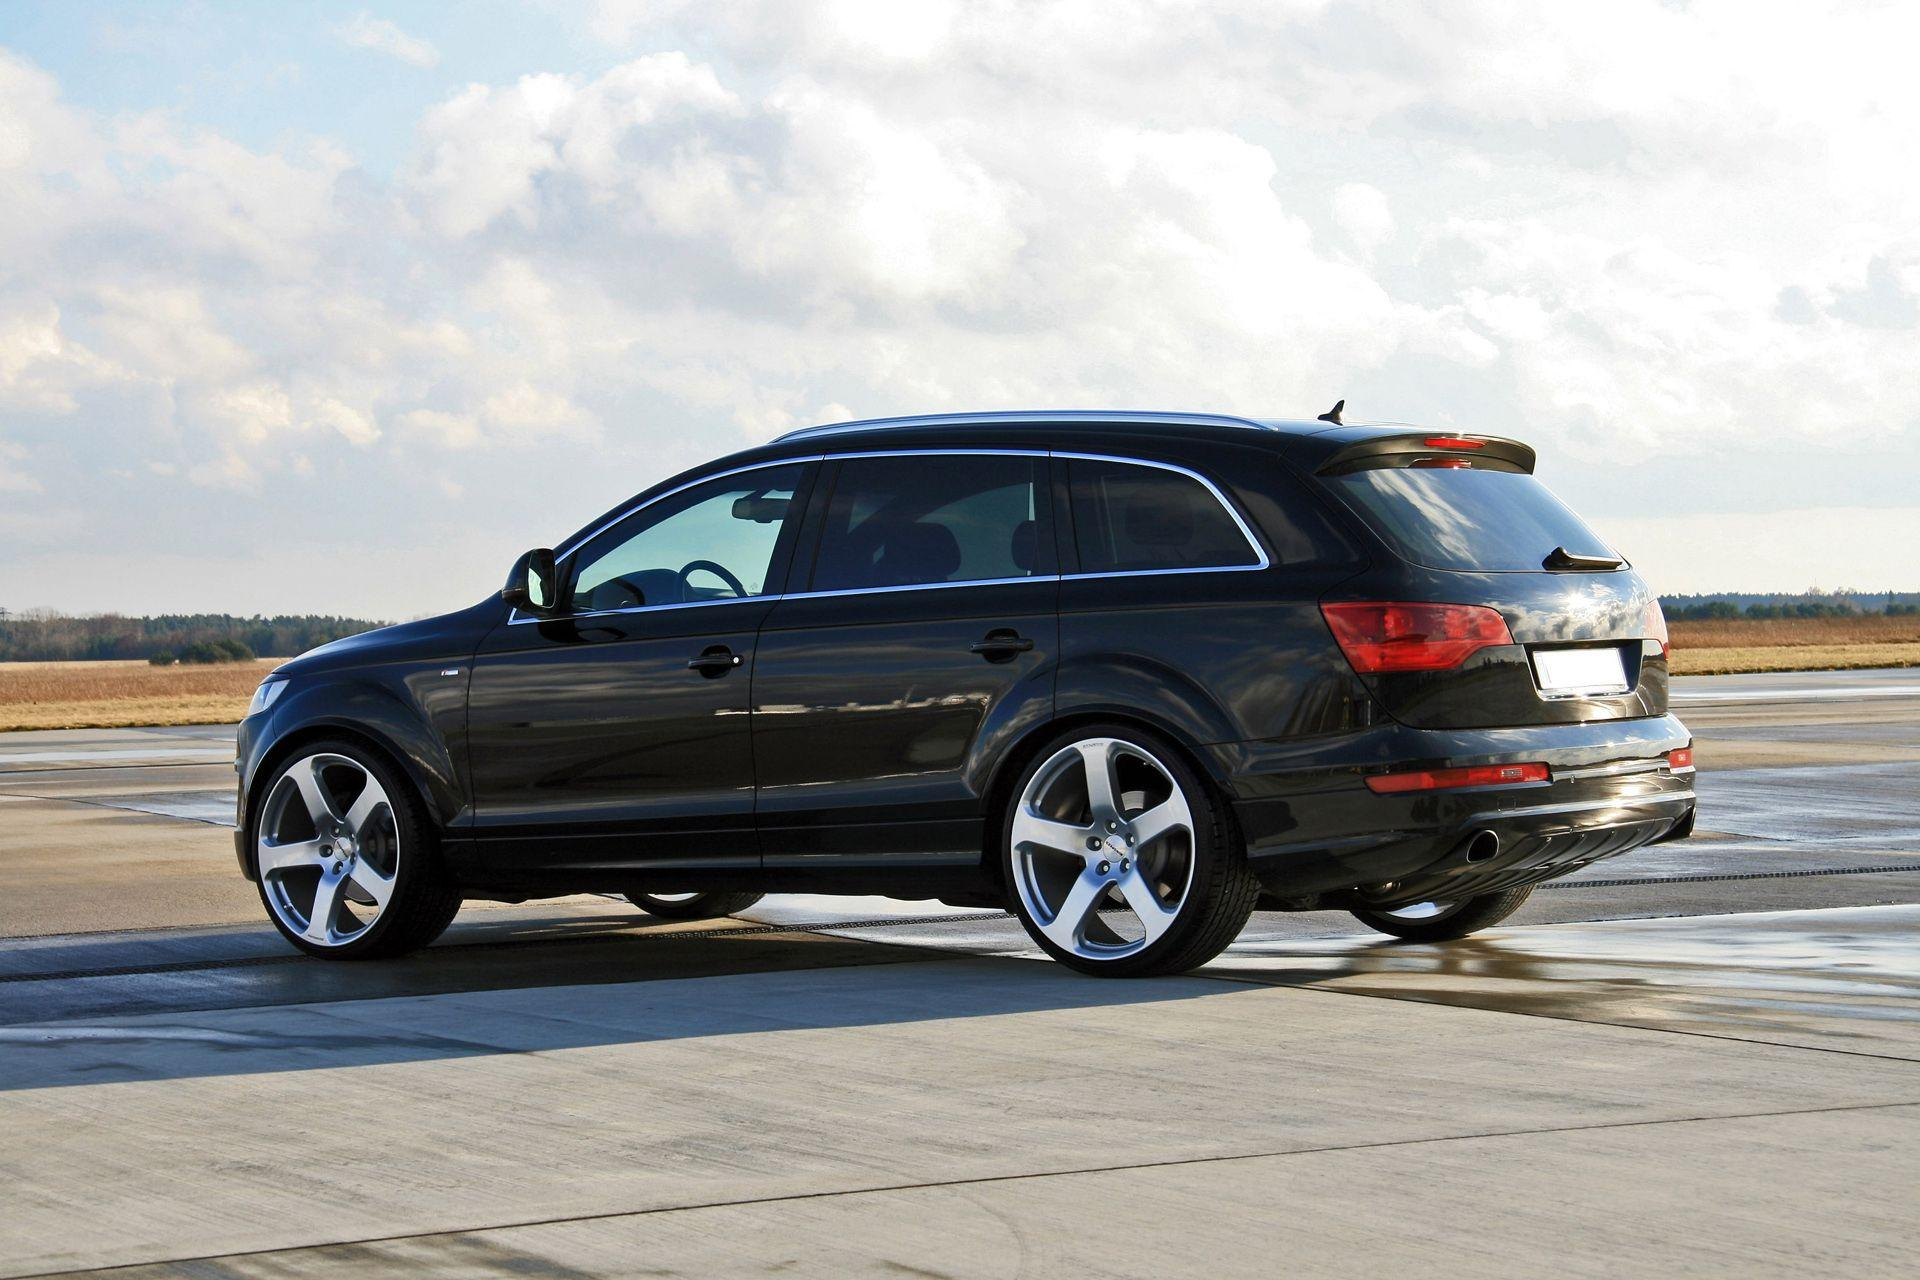 Audi Q7 Wallpapers Image Photos Pictures Backgrounds